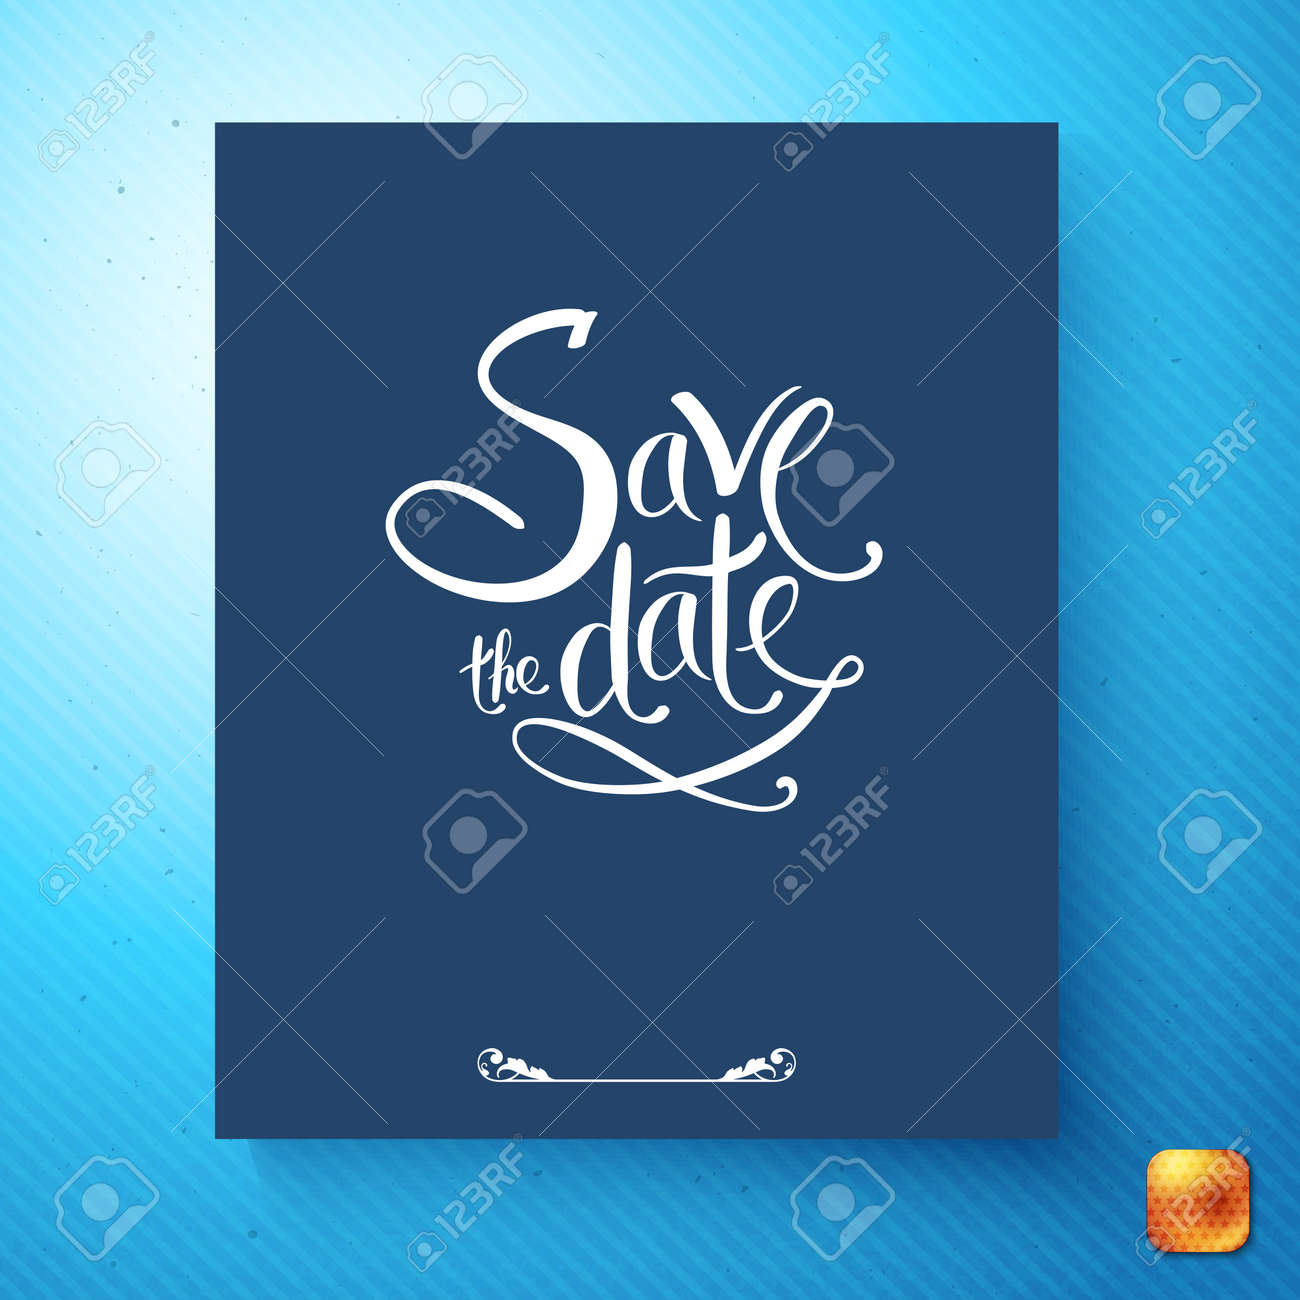 https www 123rf com photo 113426408 stock vector simple stylish save the date wedding invitation card design with white script on a blue background o html